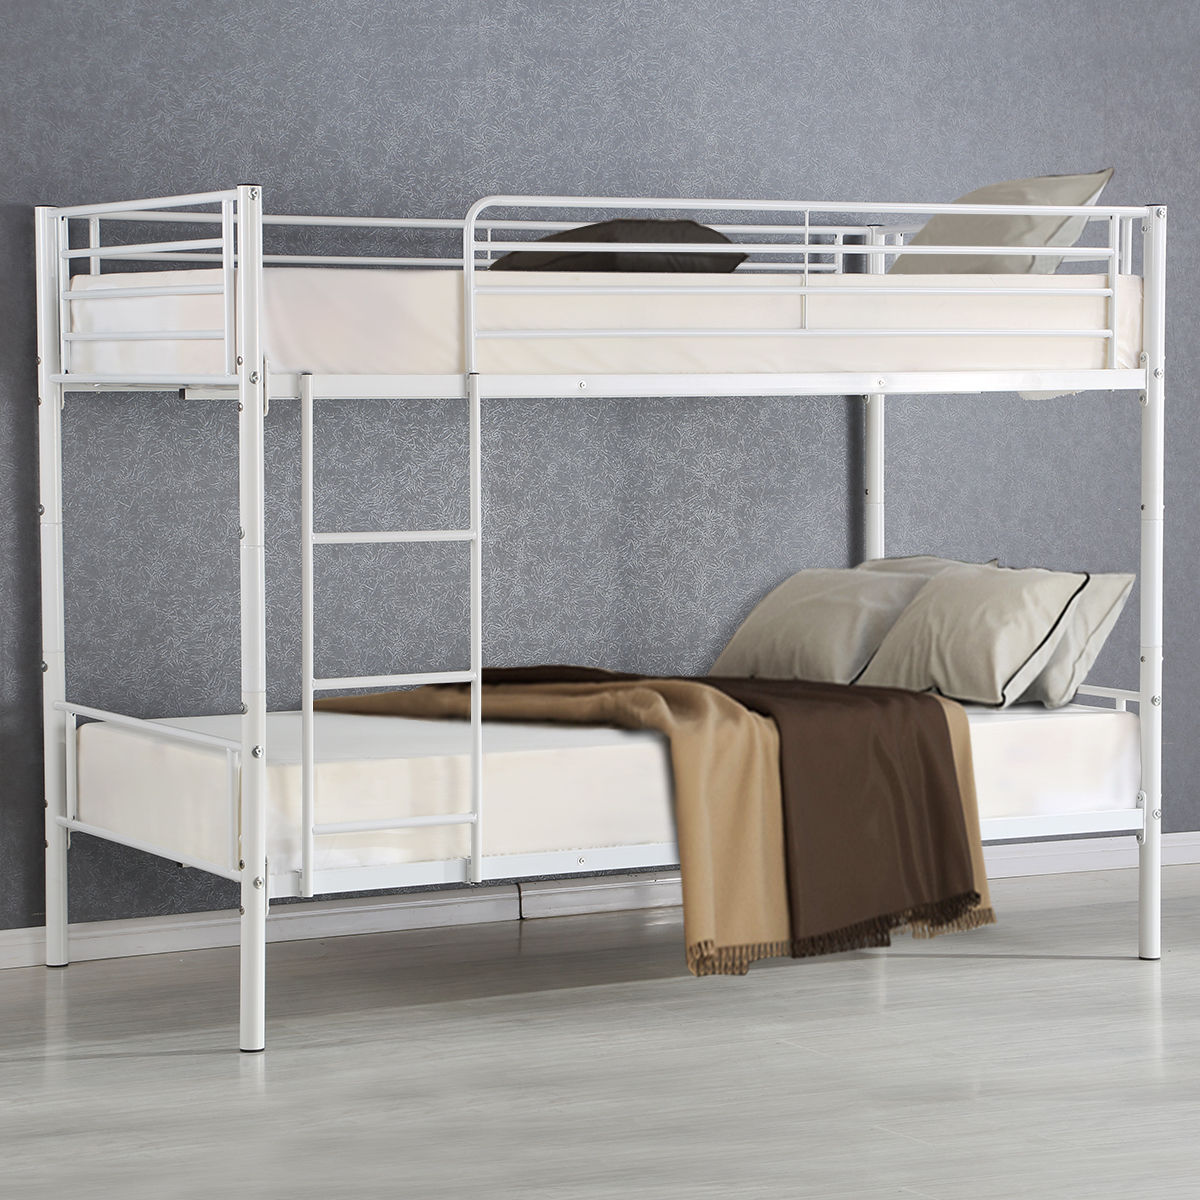 8f3e3f3da1f75 Giantex Metal Twin Over Twin Bunk Bed Modern Metal Steel Beds Frame with  Ladder Adult Children